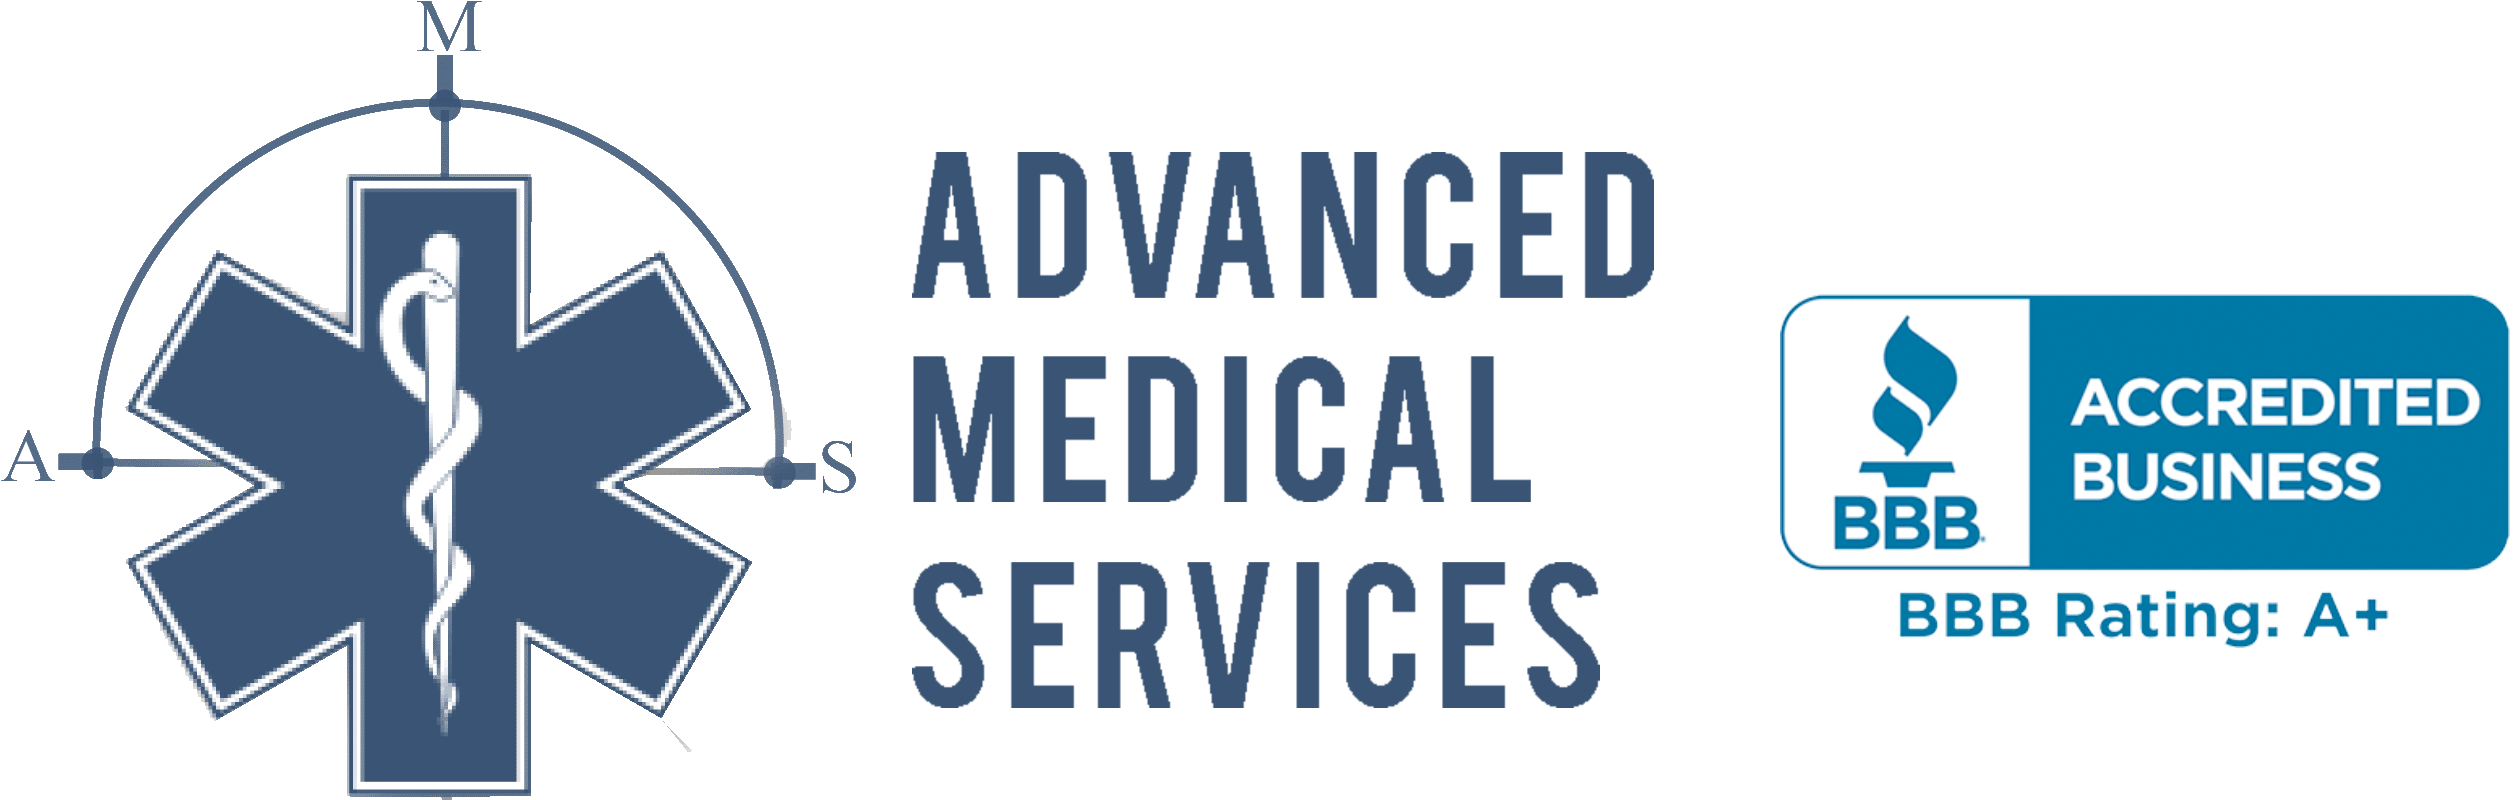 medical advances 2018-07-01 improved contraception and abortion pills mean the back-alley days are largely gone but more restrictive abortion laws would especially affect poor and minority women.